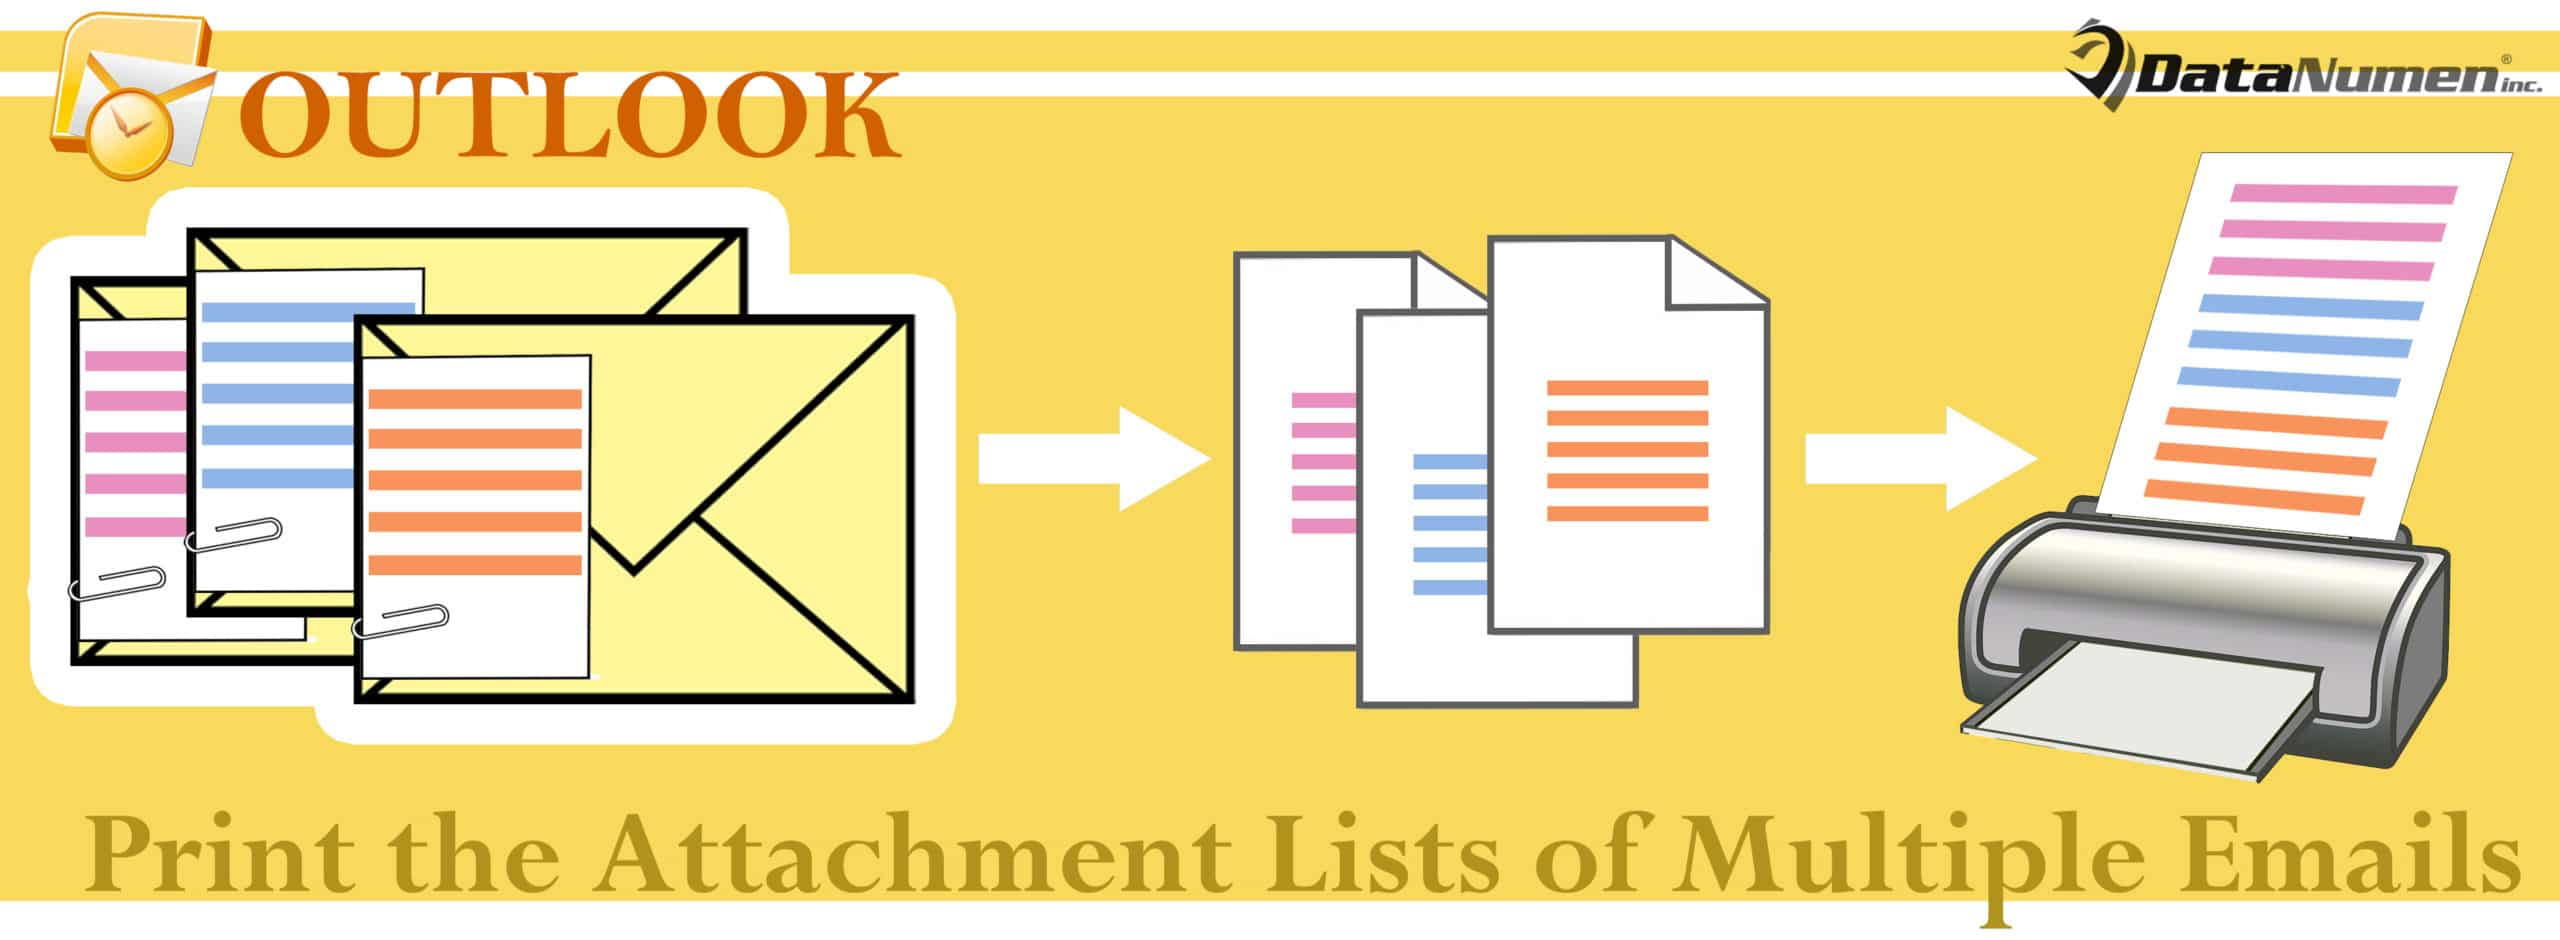 Print the Attachment Lists of Multiple Outlook Emails